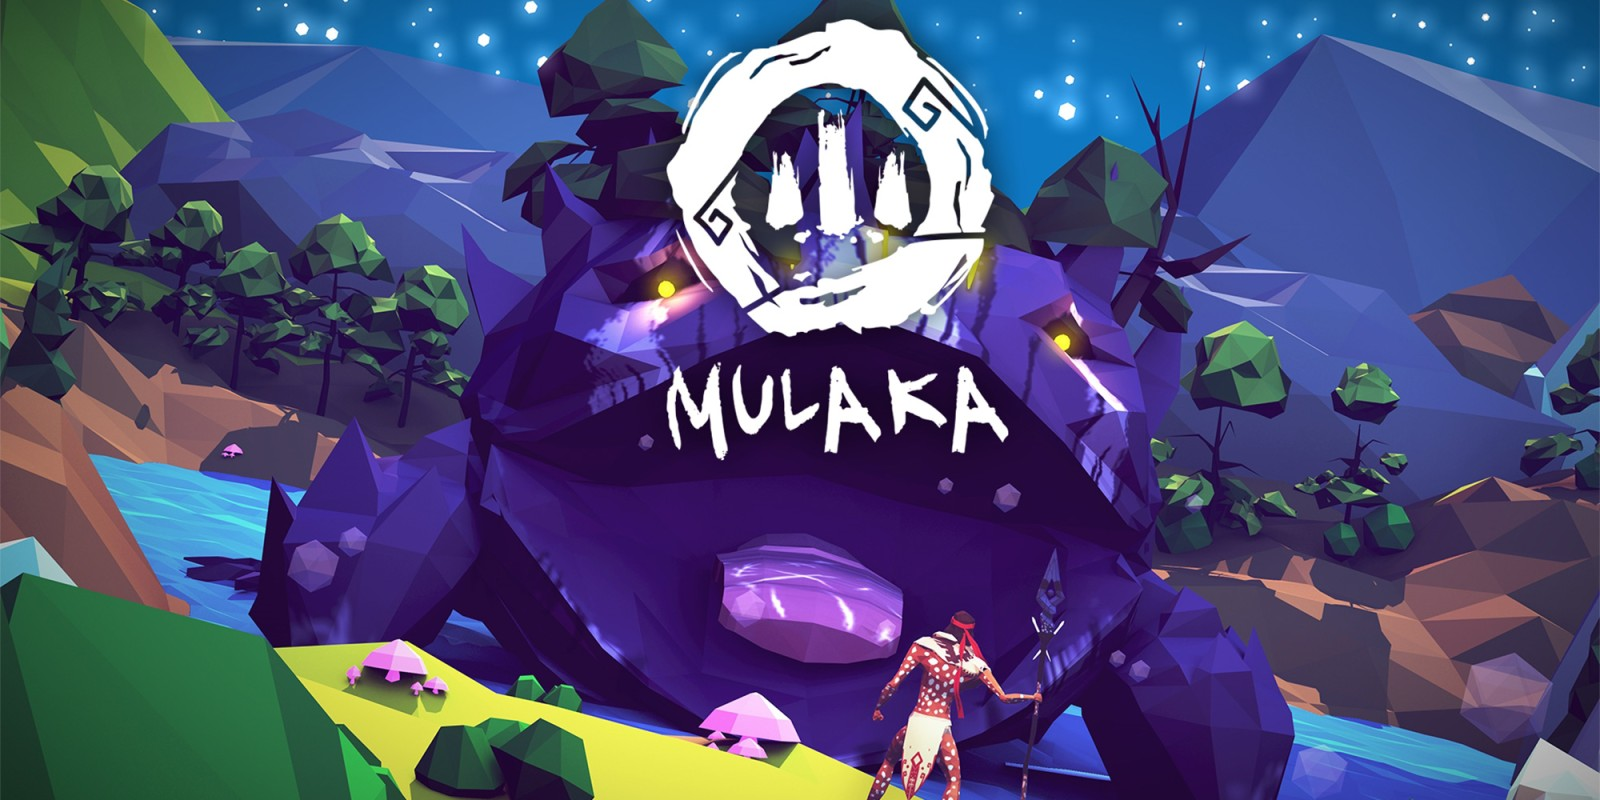 Inspired By Zelda: Reveling in the Culture of Mulaka